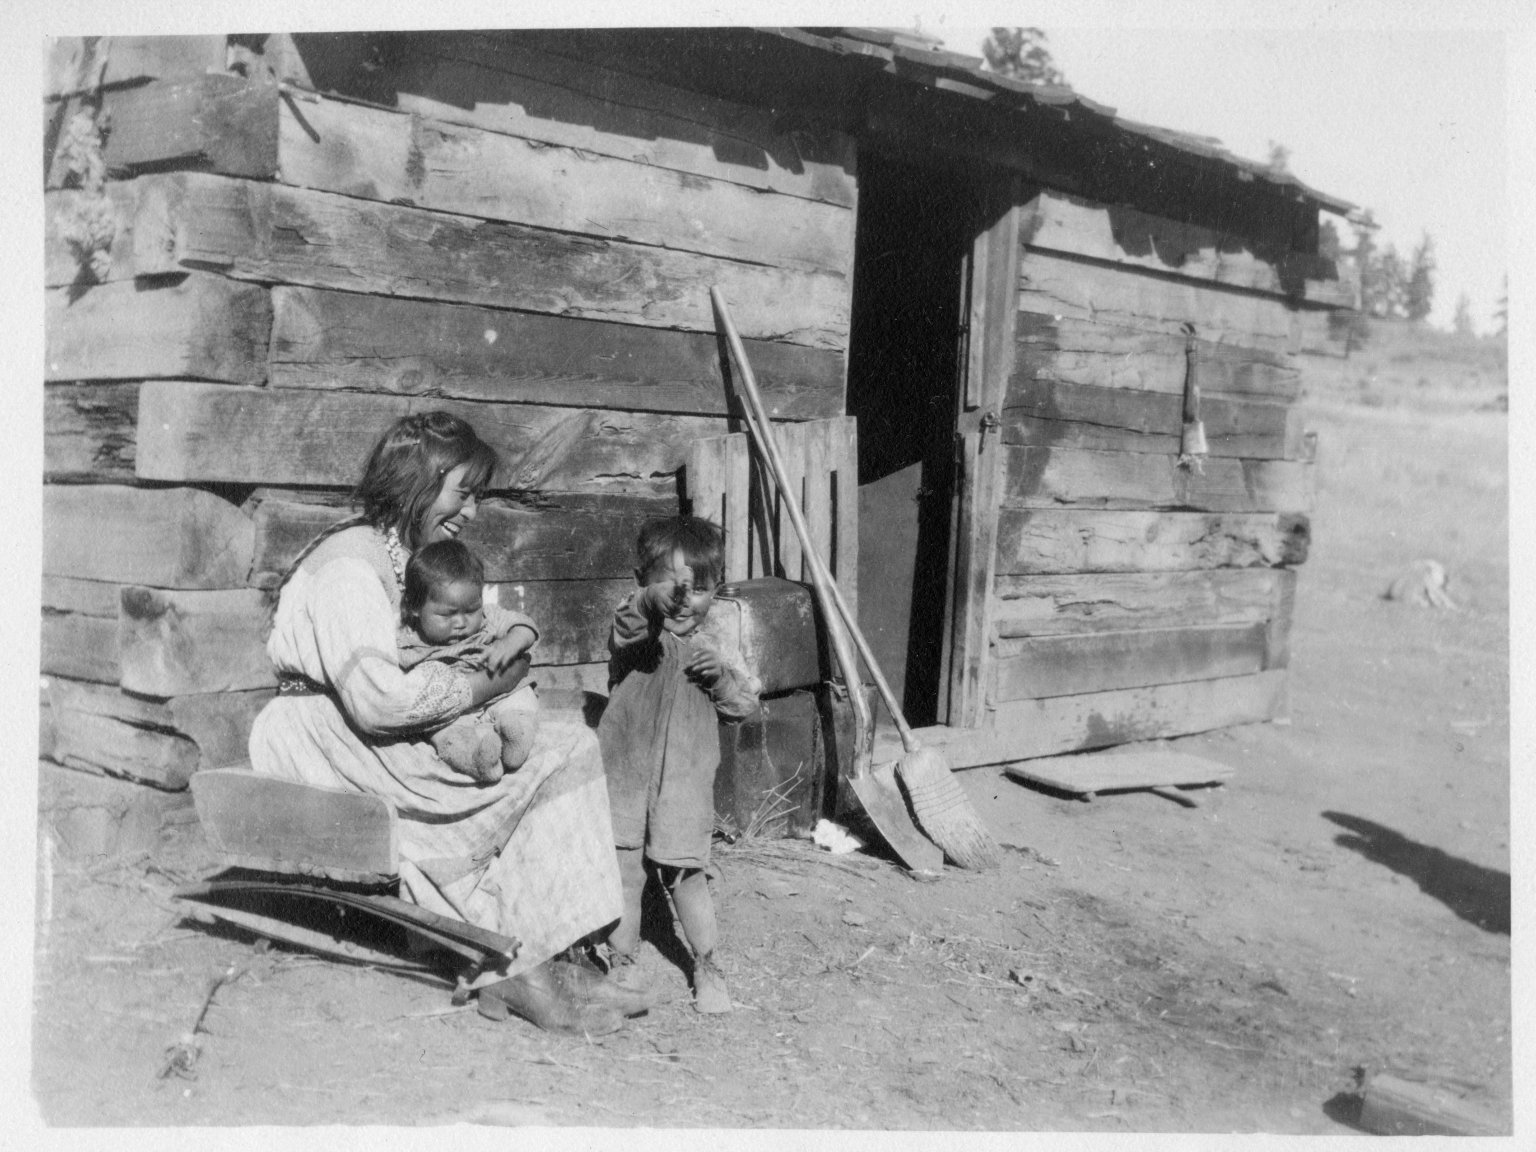 Jicarilla Apache woman with children